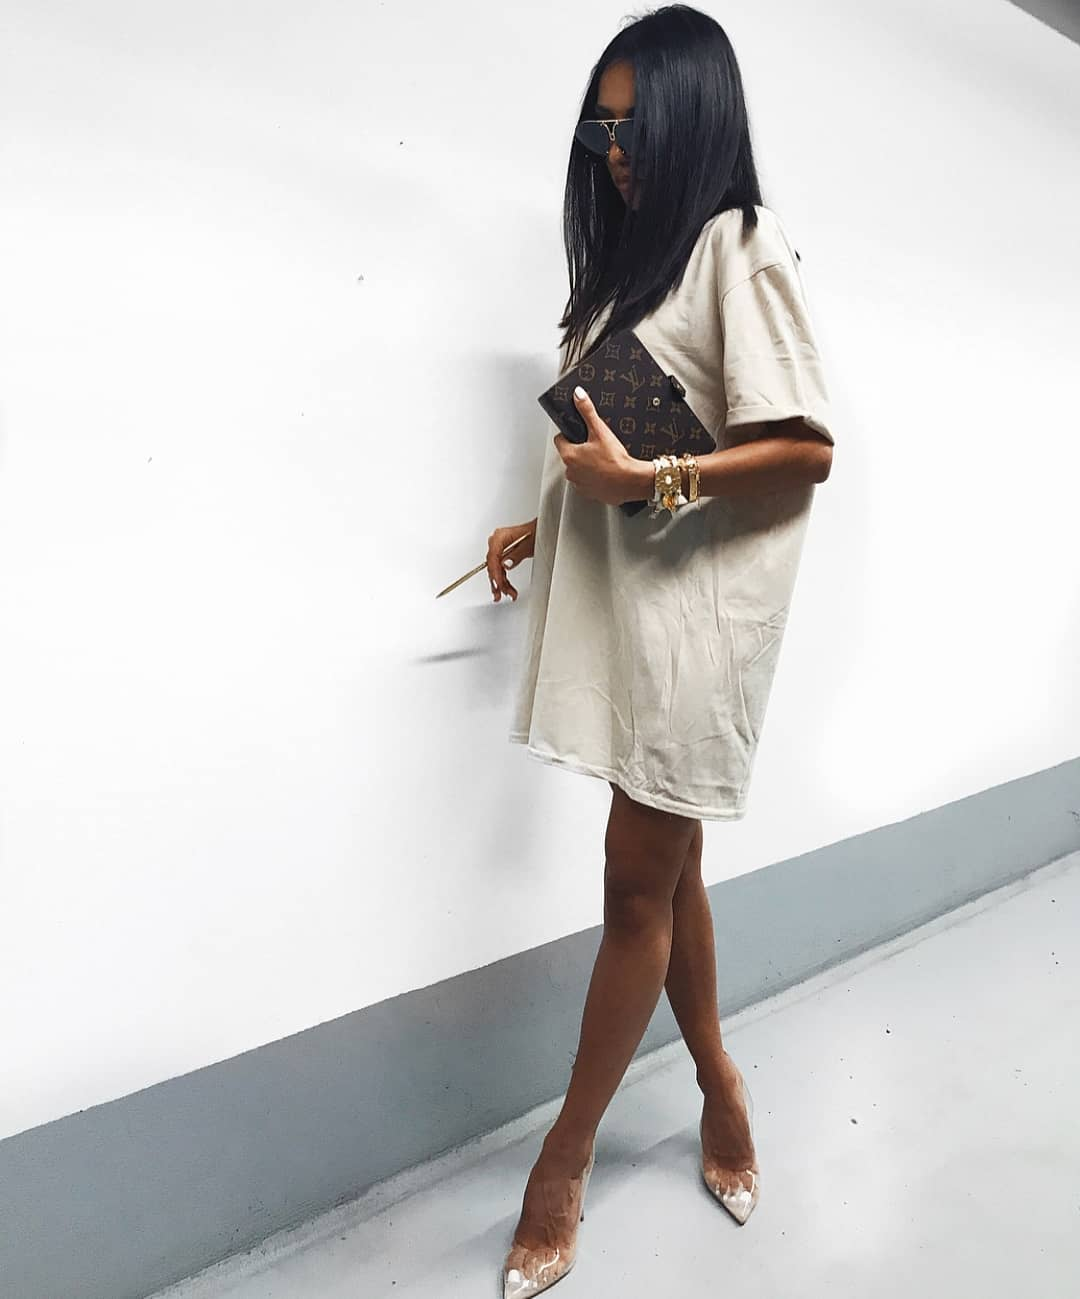 Oversized T-Shirt Dress In White And Clear Heels For Summer 2019